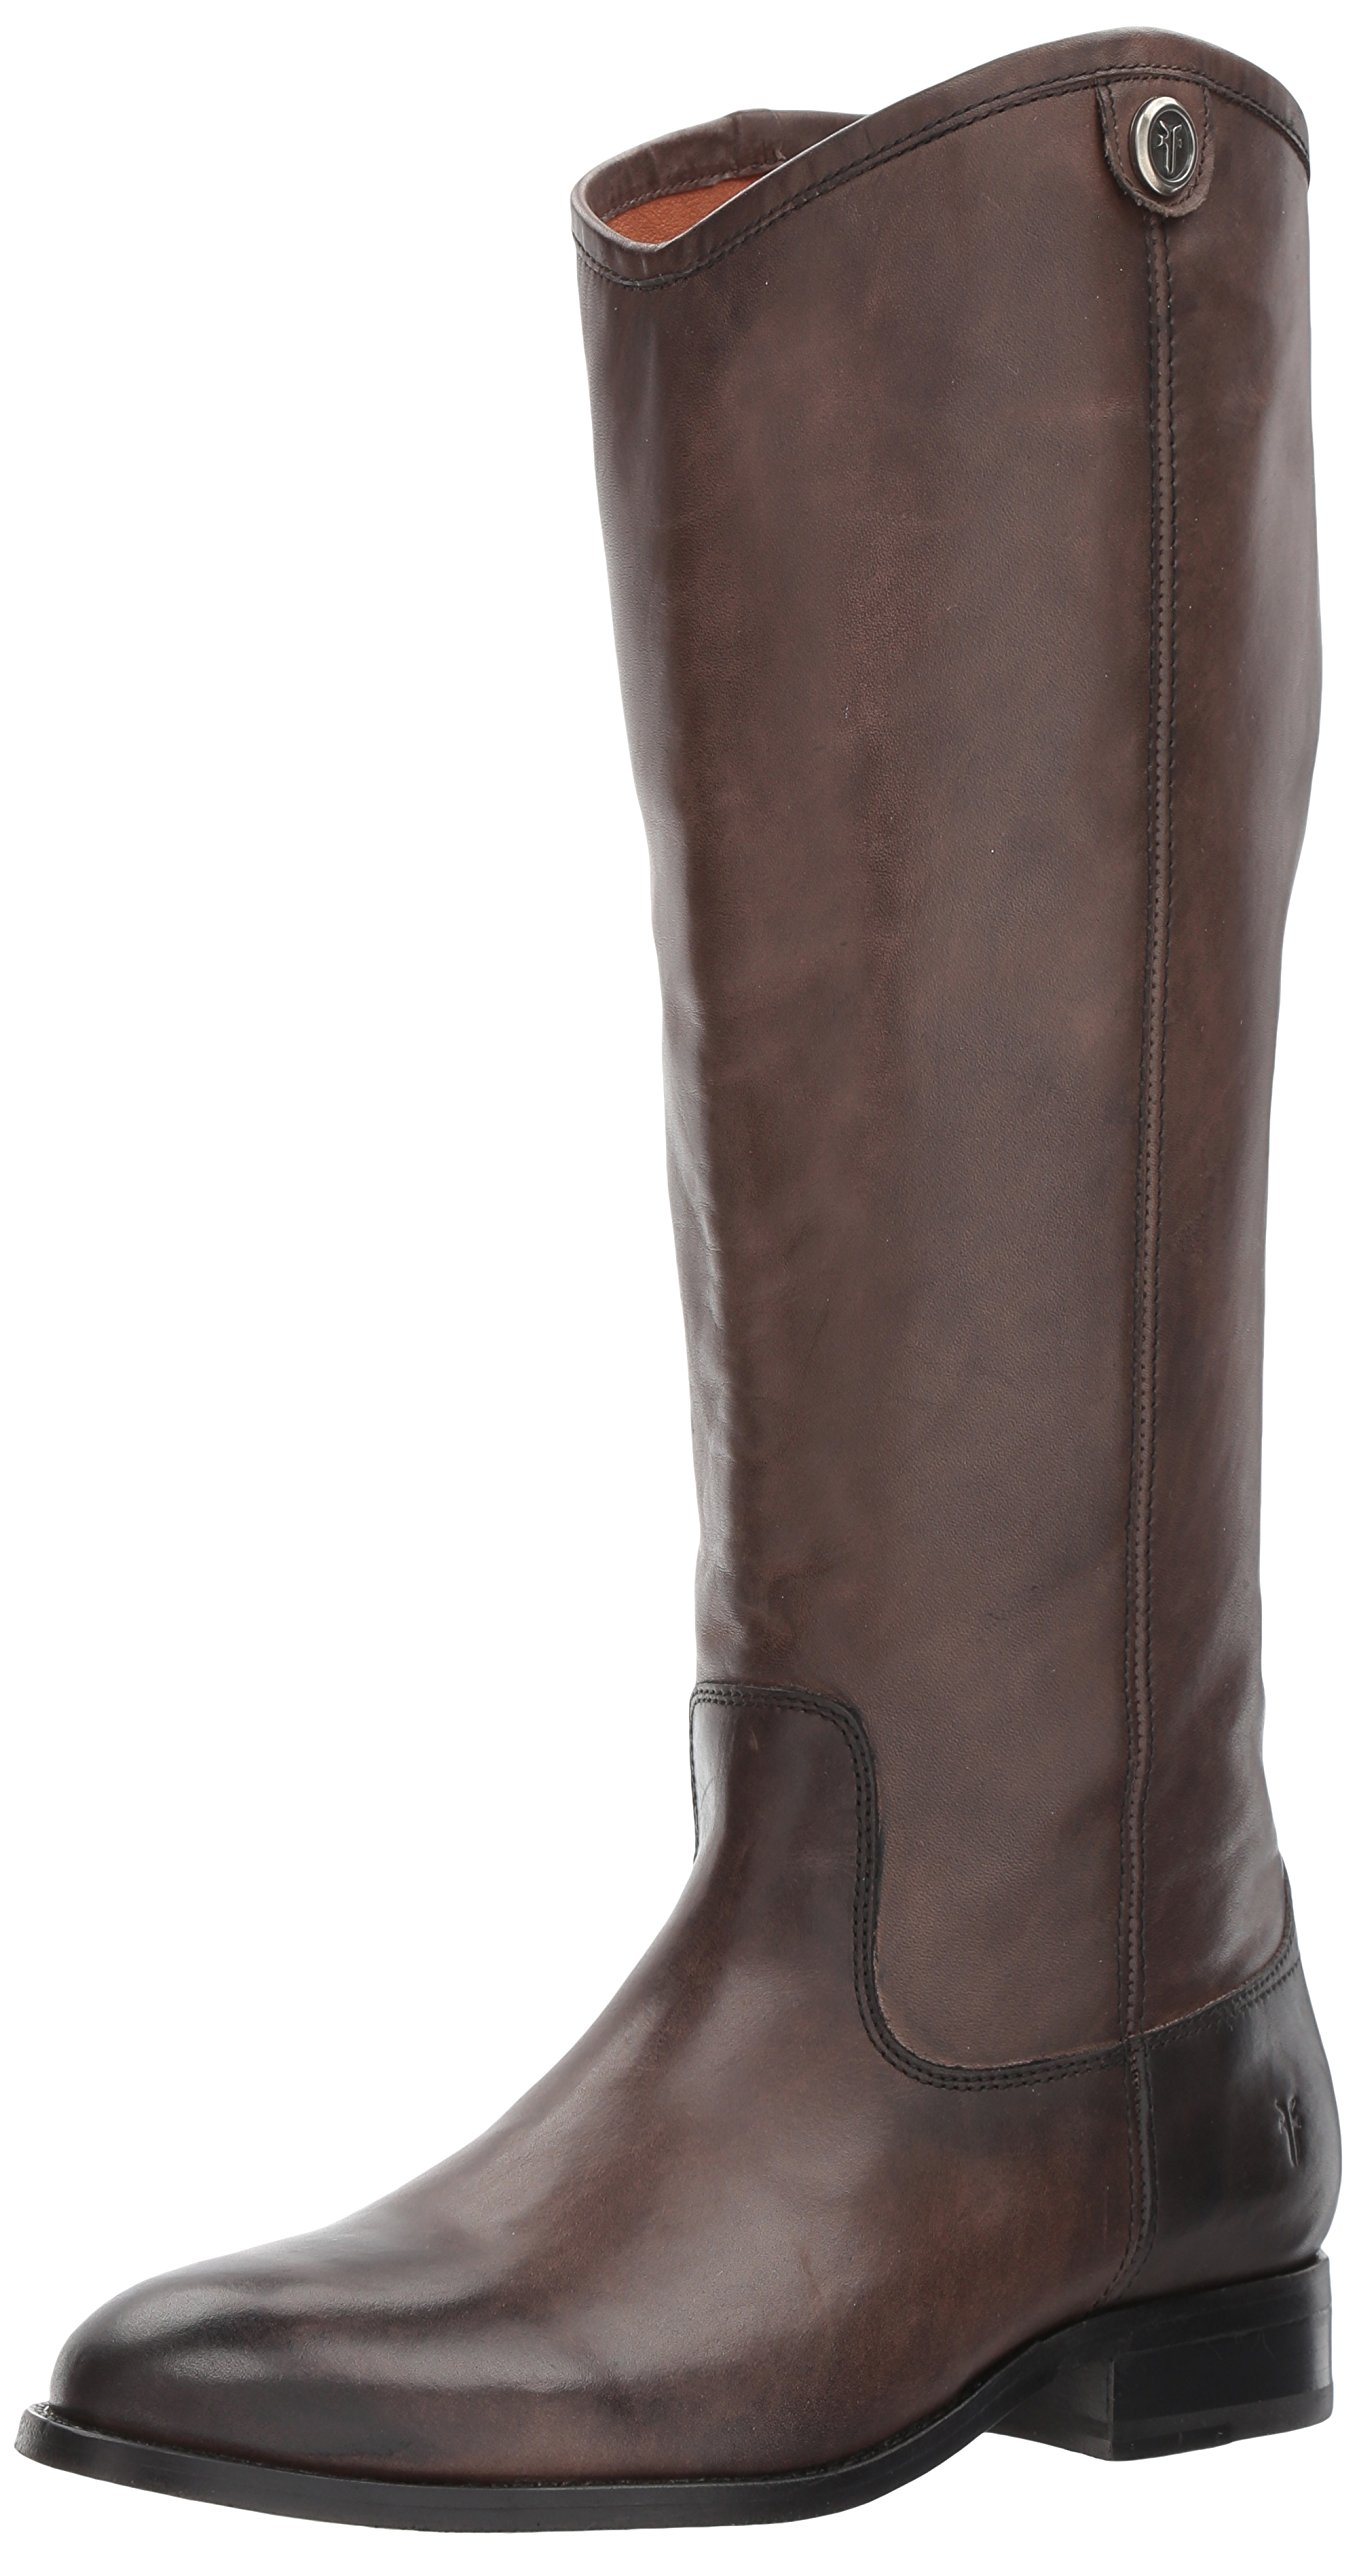 FRYE Women's Melissa Button 2 Riding Boot, Smoke, 7 M US